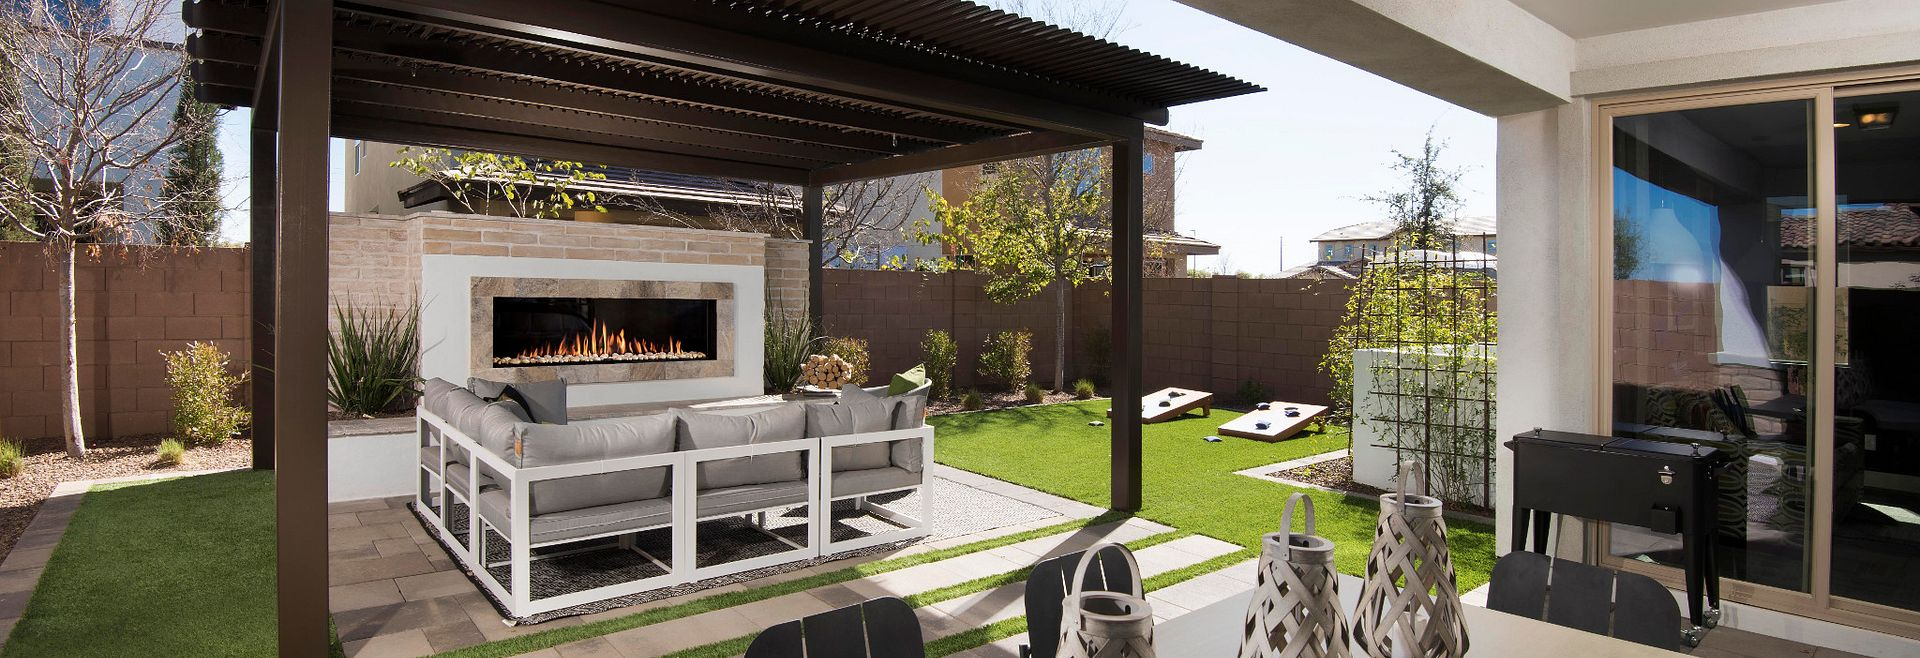 Ambition at Recker Pointe backyard with grass, pergola, and outdoor fireplace